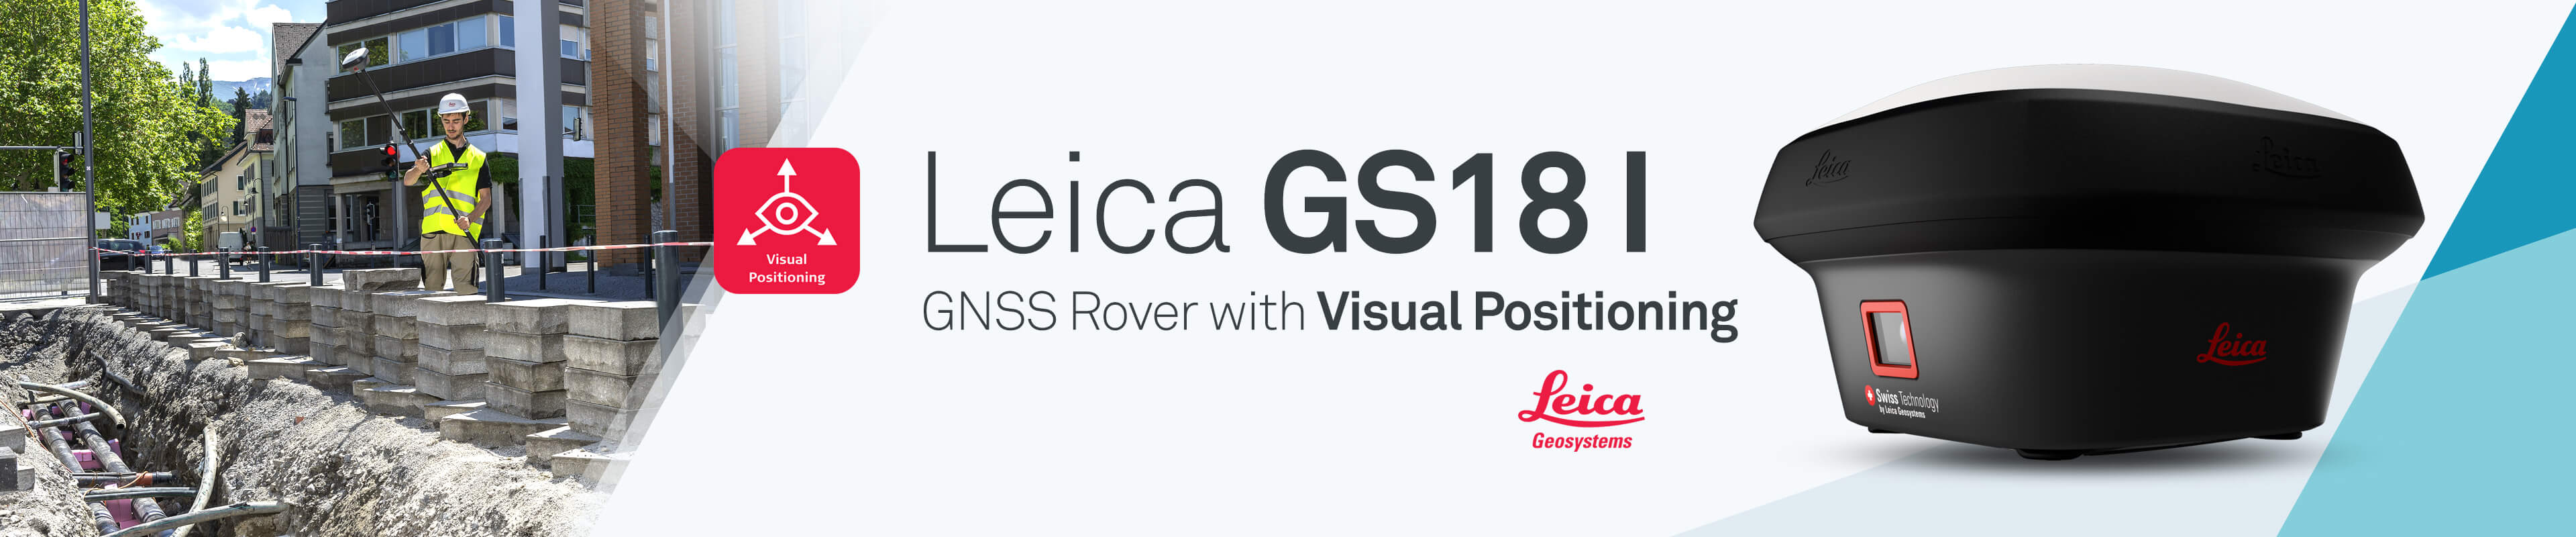 Leica GS18 I - GNSS Rover with Visual Positioning